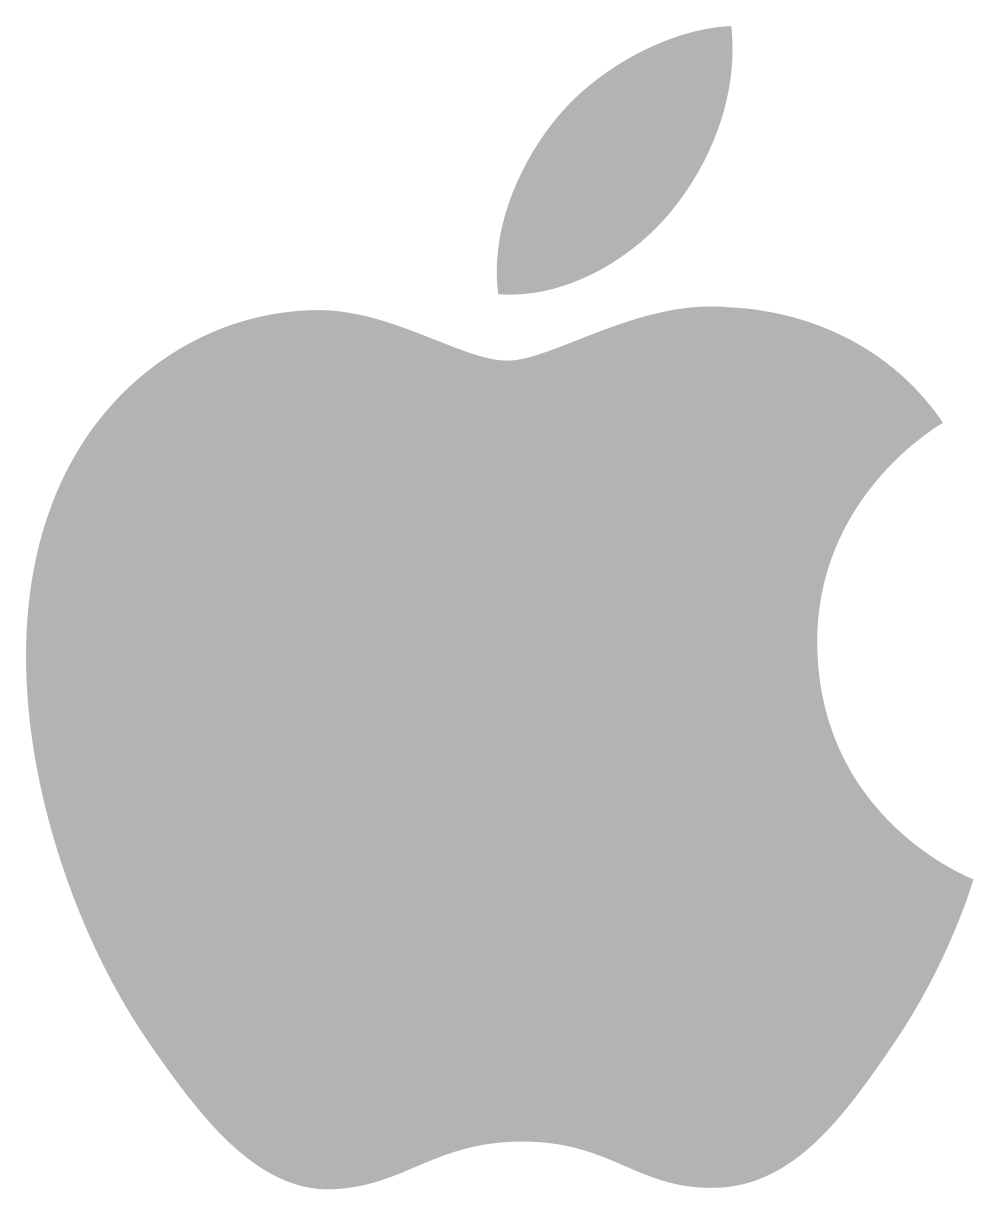 500+ apple logo - latest apple logo, icon, gif, transparent png